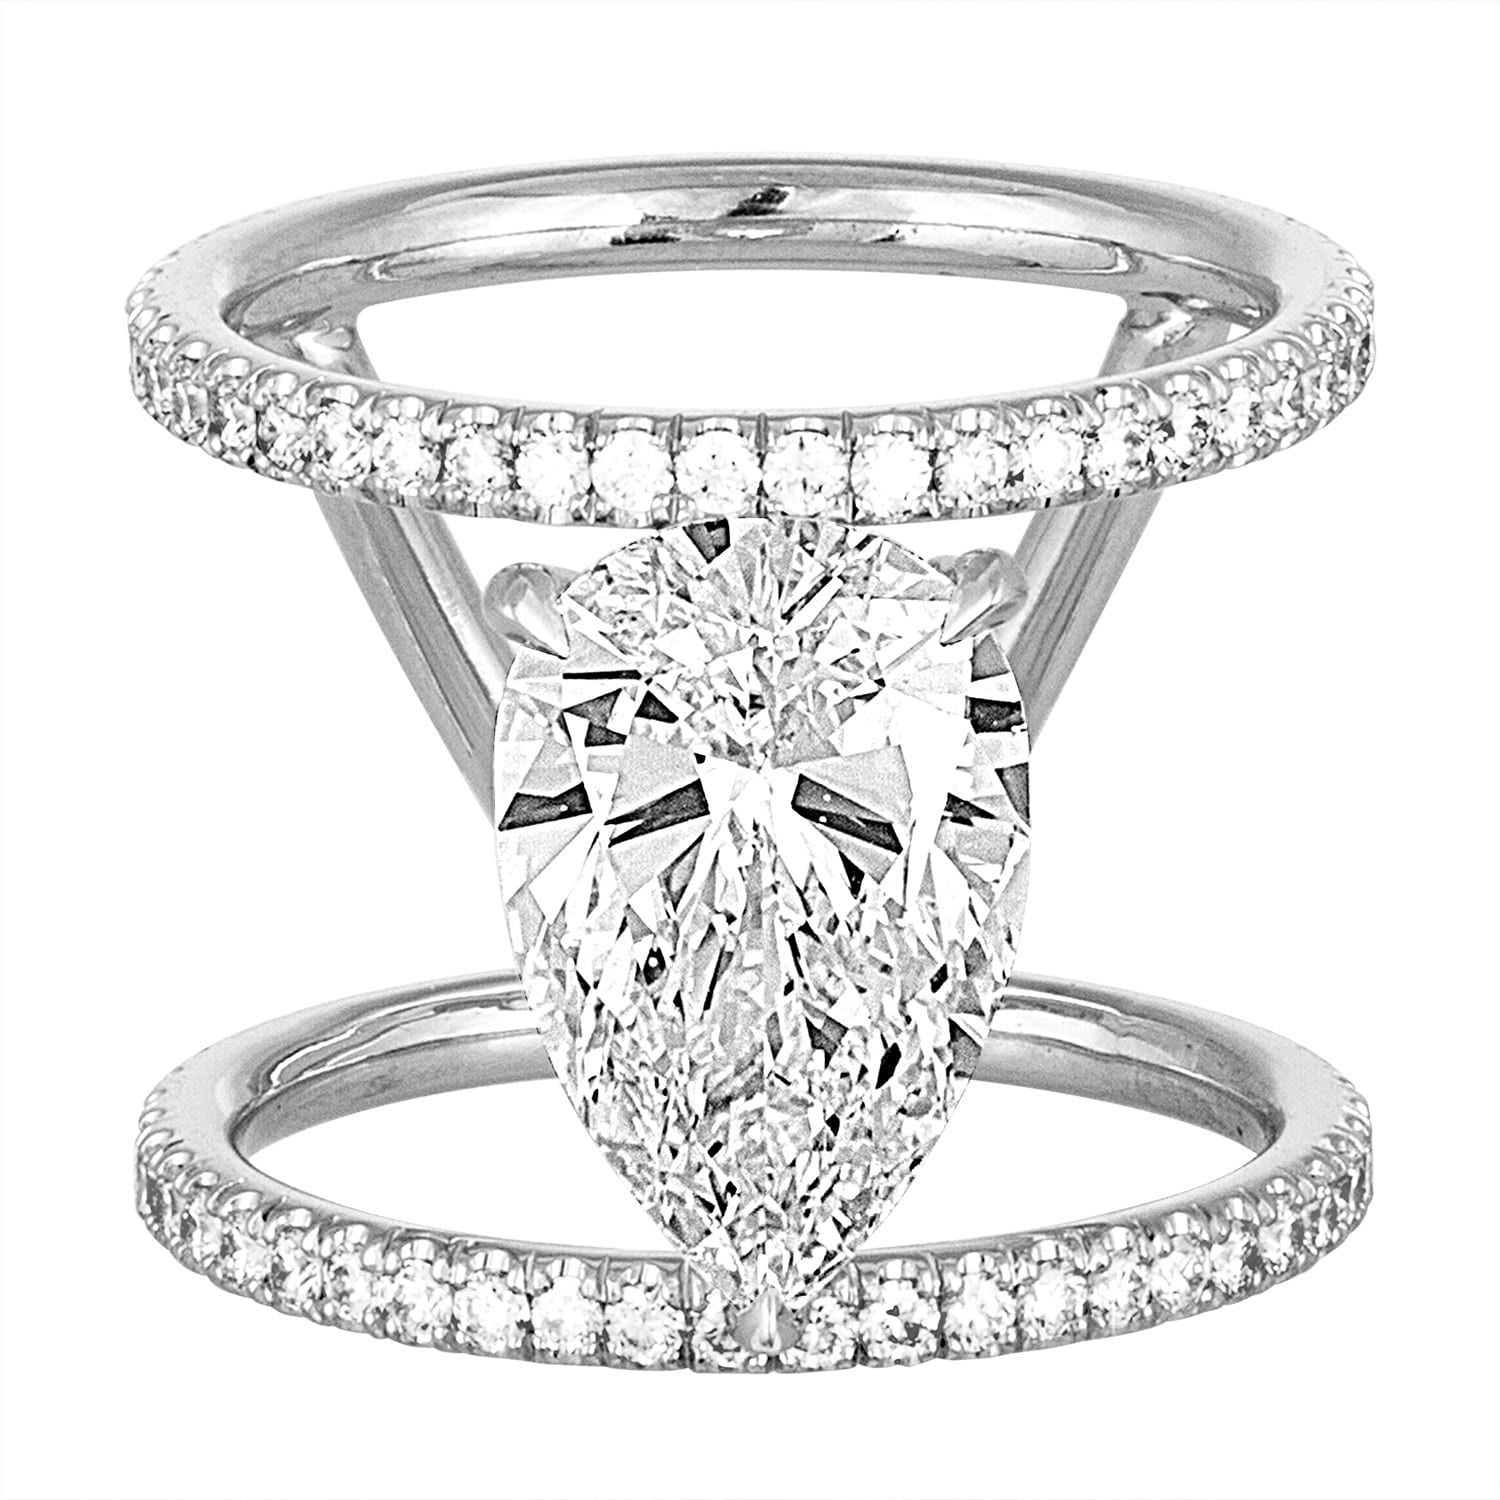 to all diamond the lab ring emails size promptly a very also rings alexa original heirloom was s with created image perfect round went responded miadonna i engagement and my products helpful it